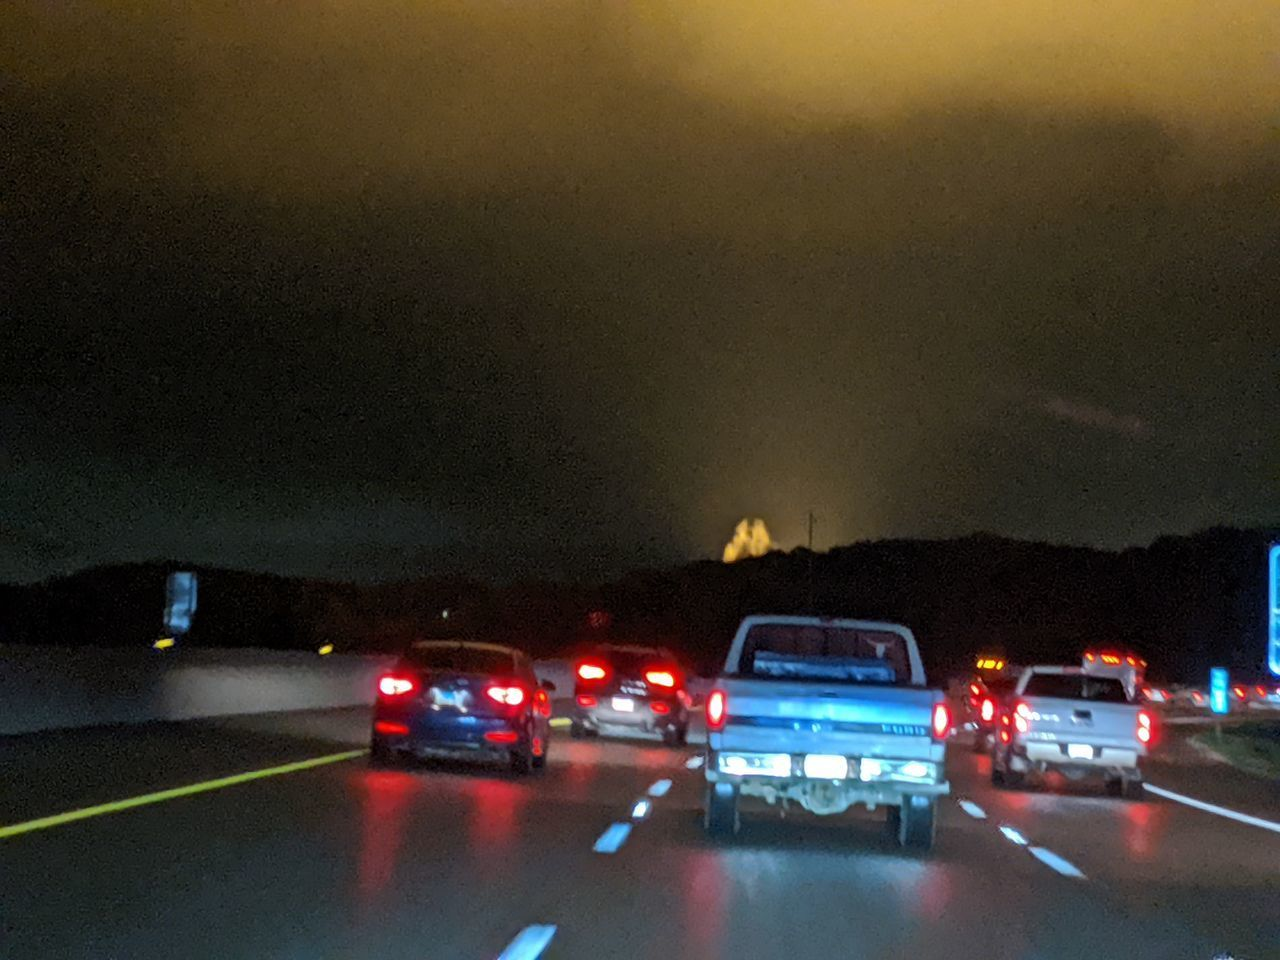 car, transportation, illuminated, motor vehicle, mode of transportation, land vehicle, night, city, street, road, architecture, no people, nature, accidents and disasters, tail light, motion, sky, on the move, outdoors, glowing